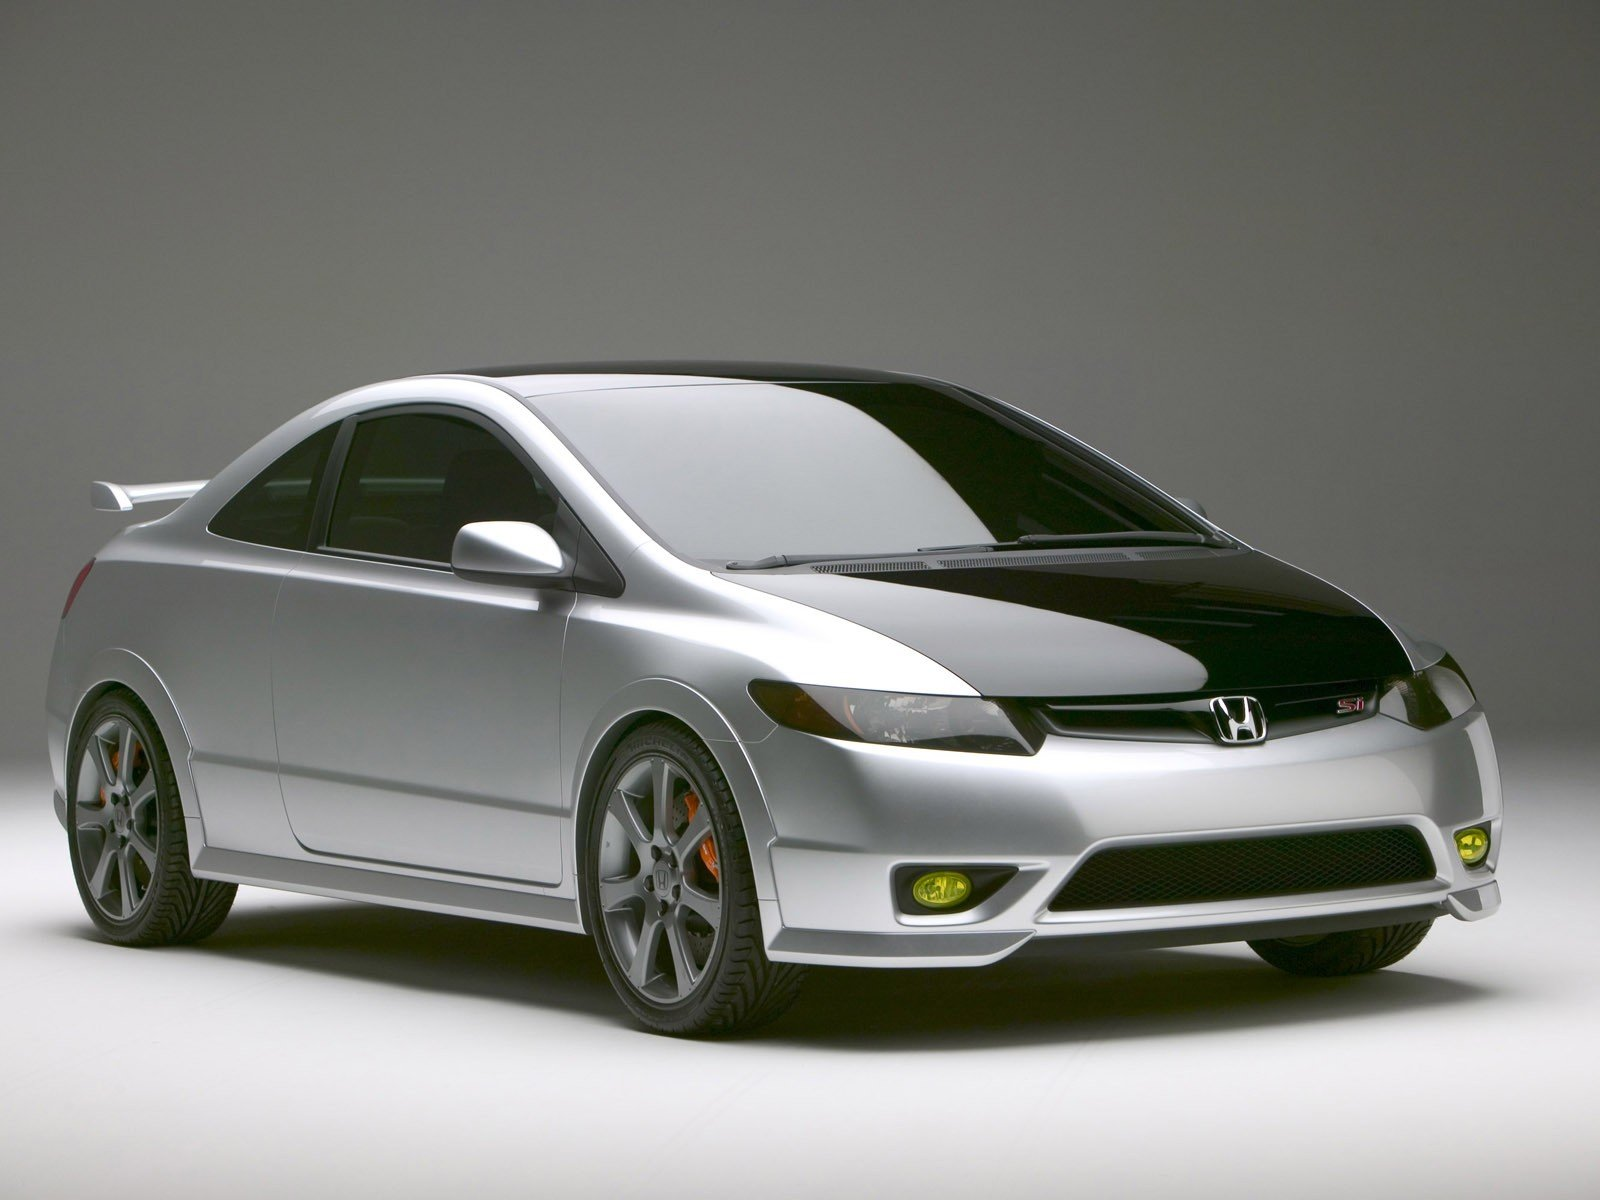 New Nice Cars Honda Civic Si Upcoming Model 2011 On This Month